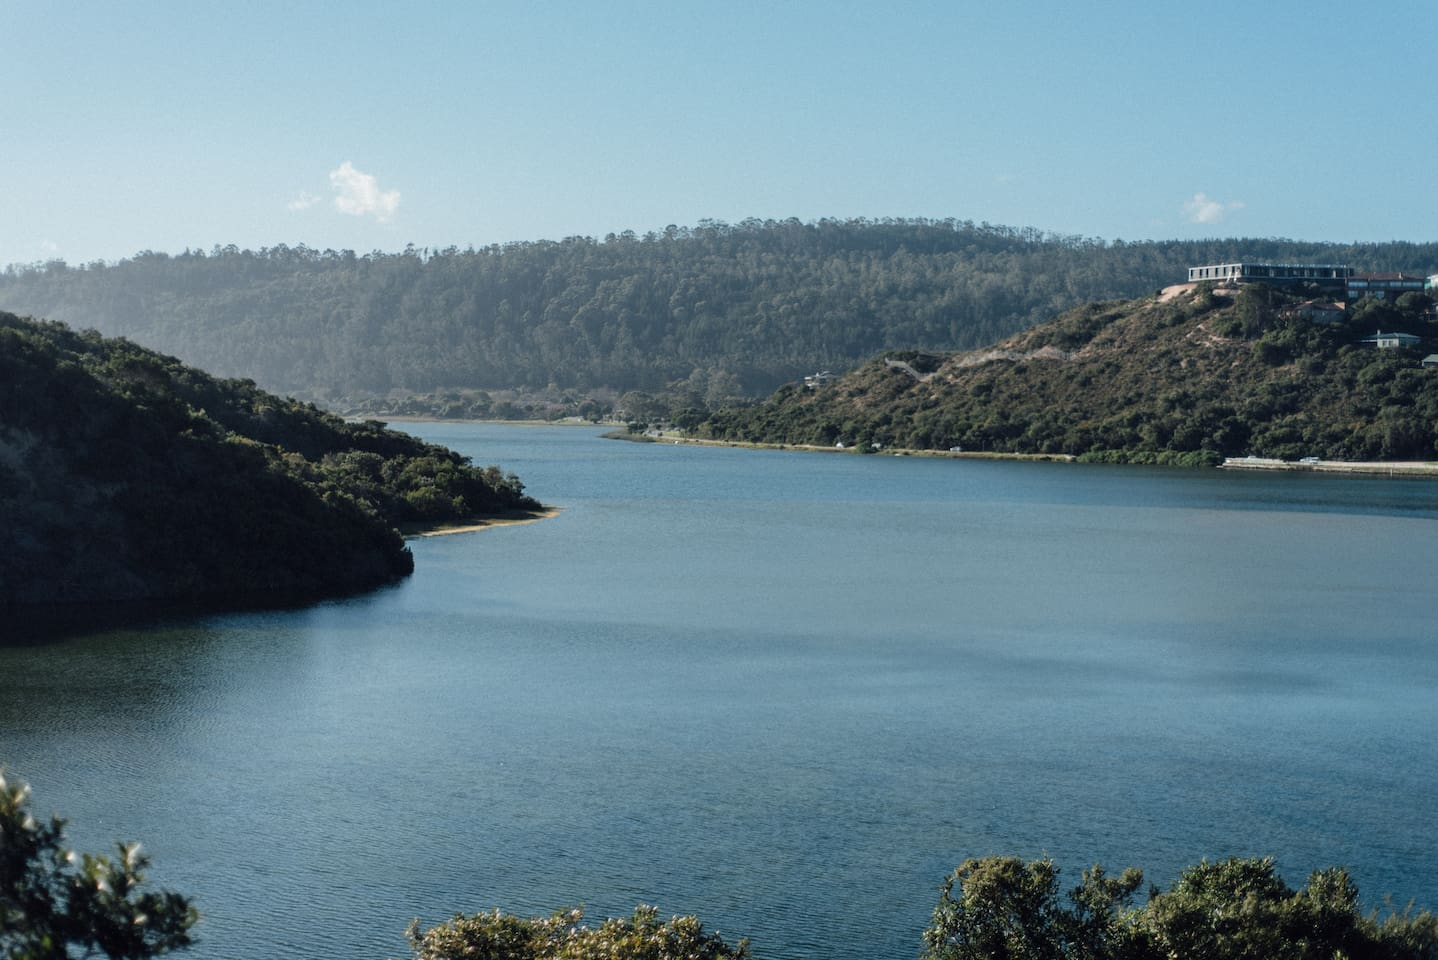 Come enjoy the beautiful view over the Sedgefield lagoon. Corada is your ideal home away from home.